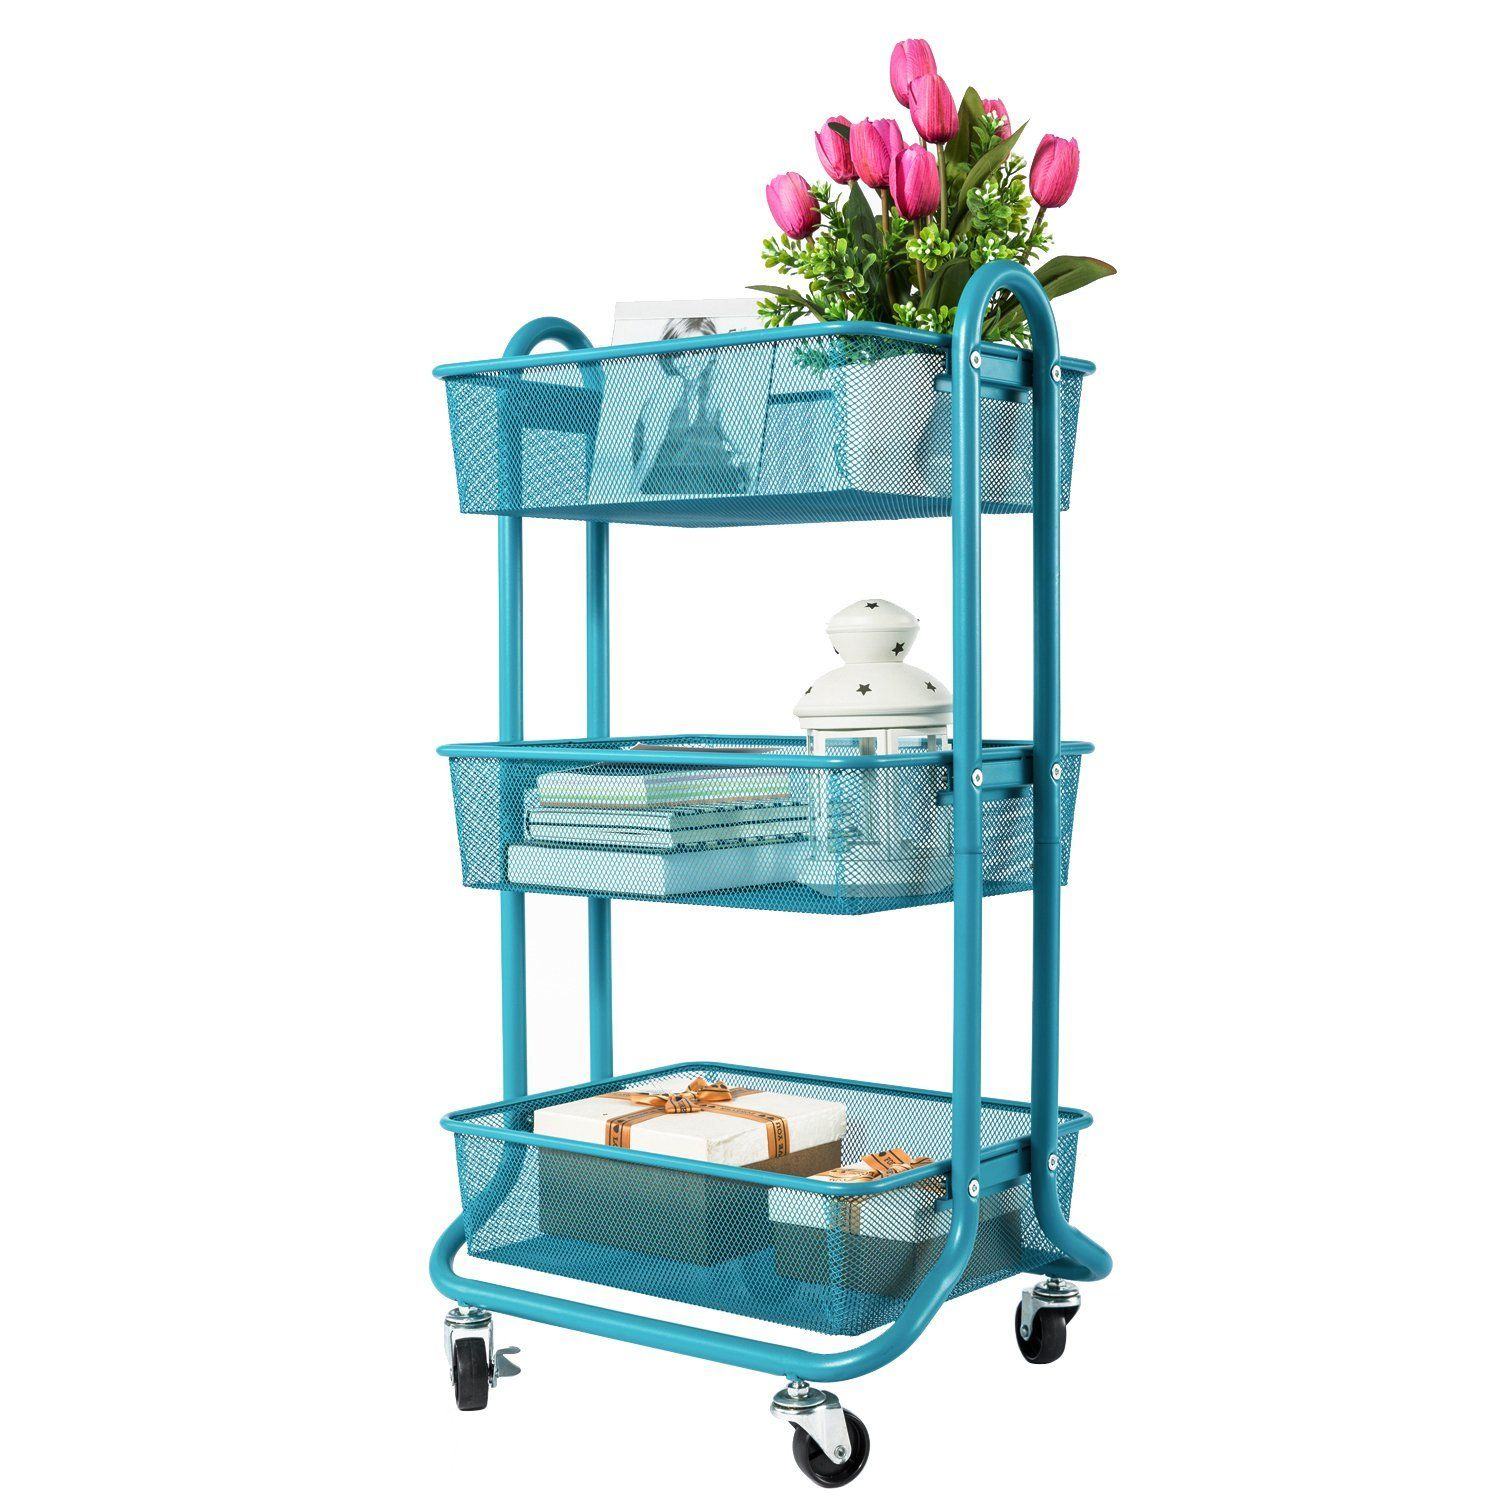 Amazon 3 Tier Metal Mesh Rolling Storage Cart With Utility Handle,